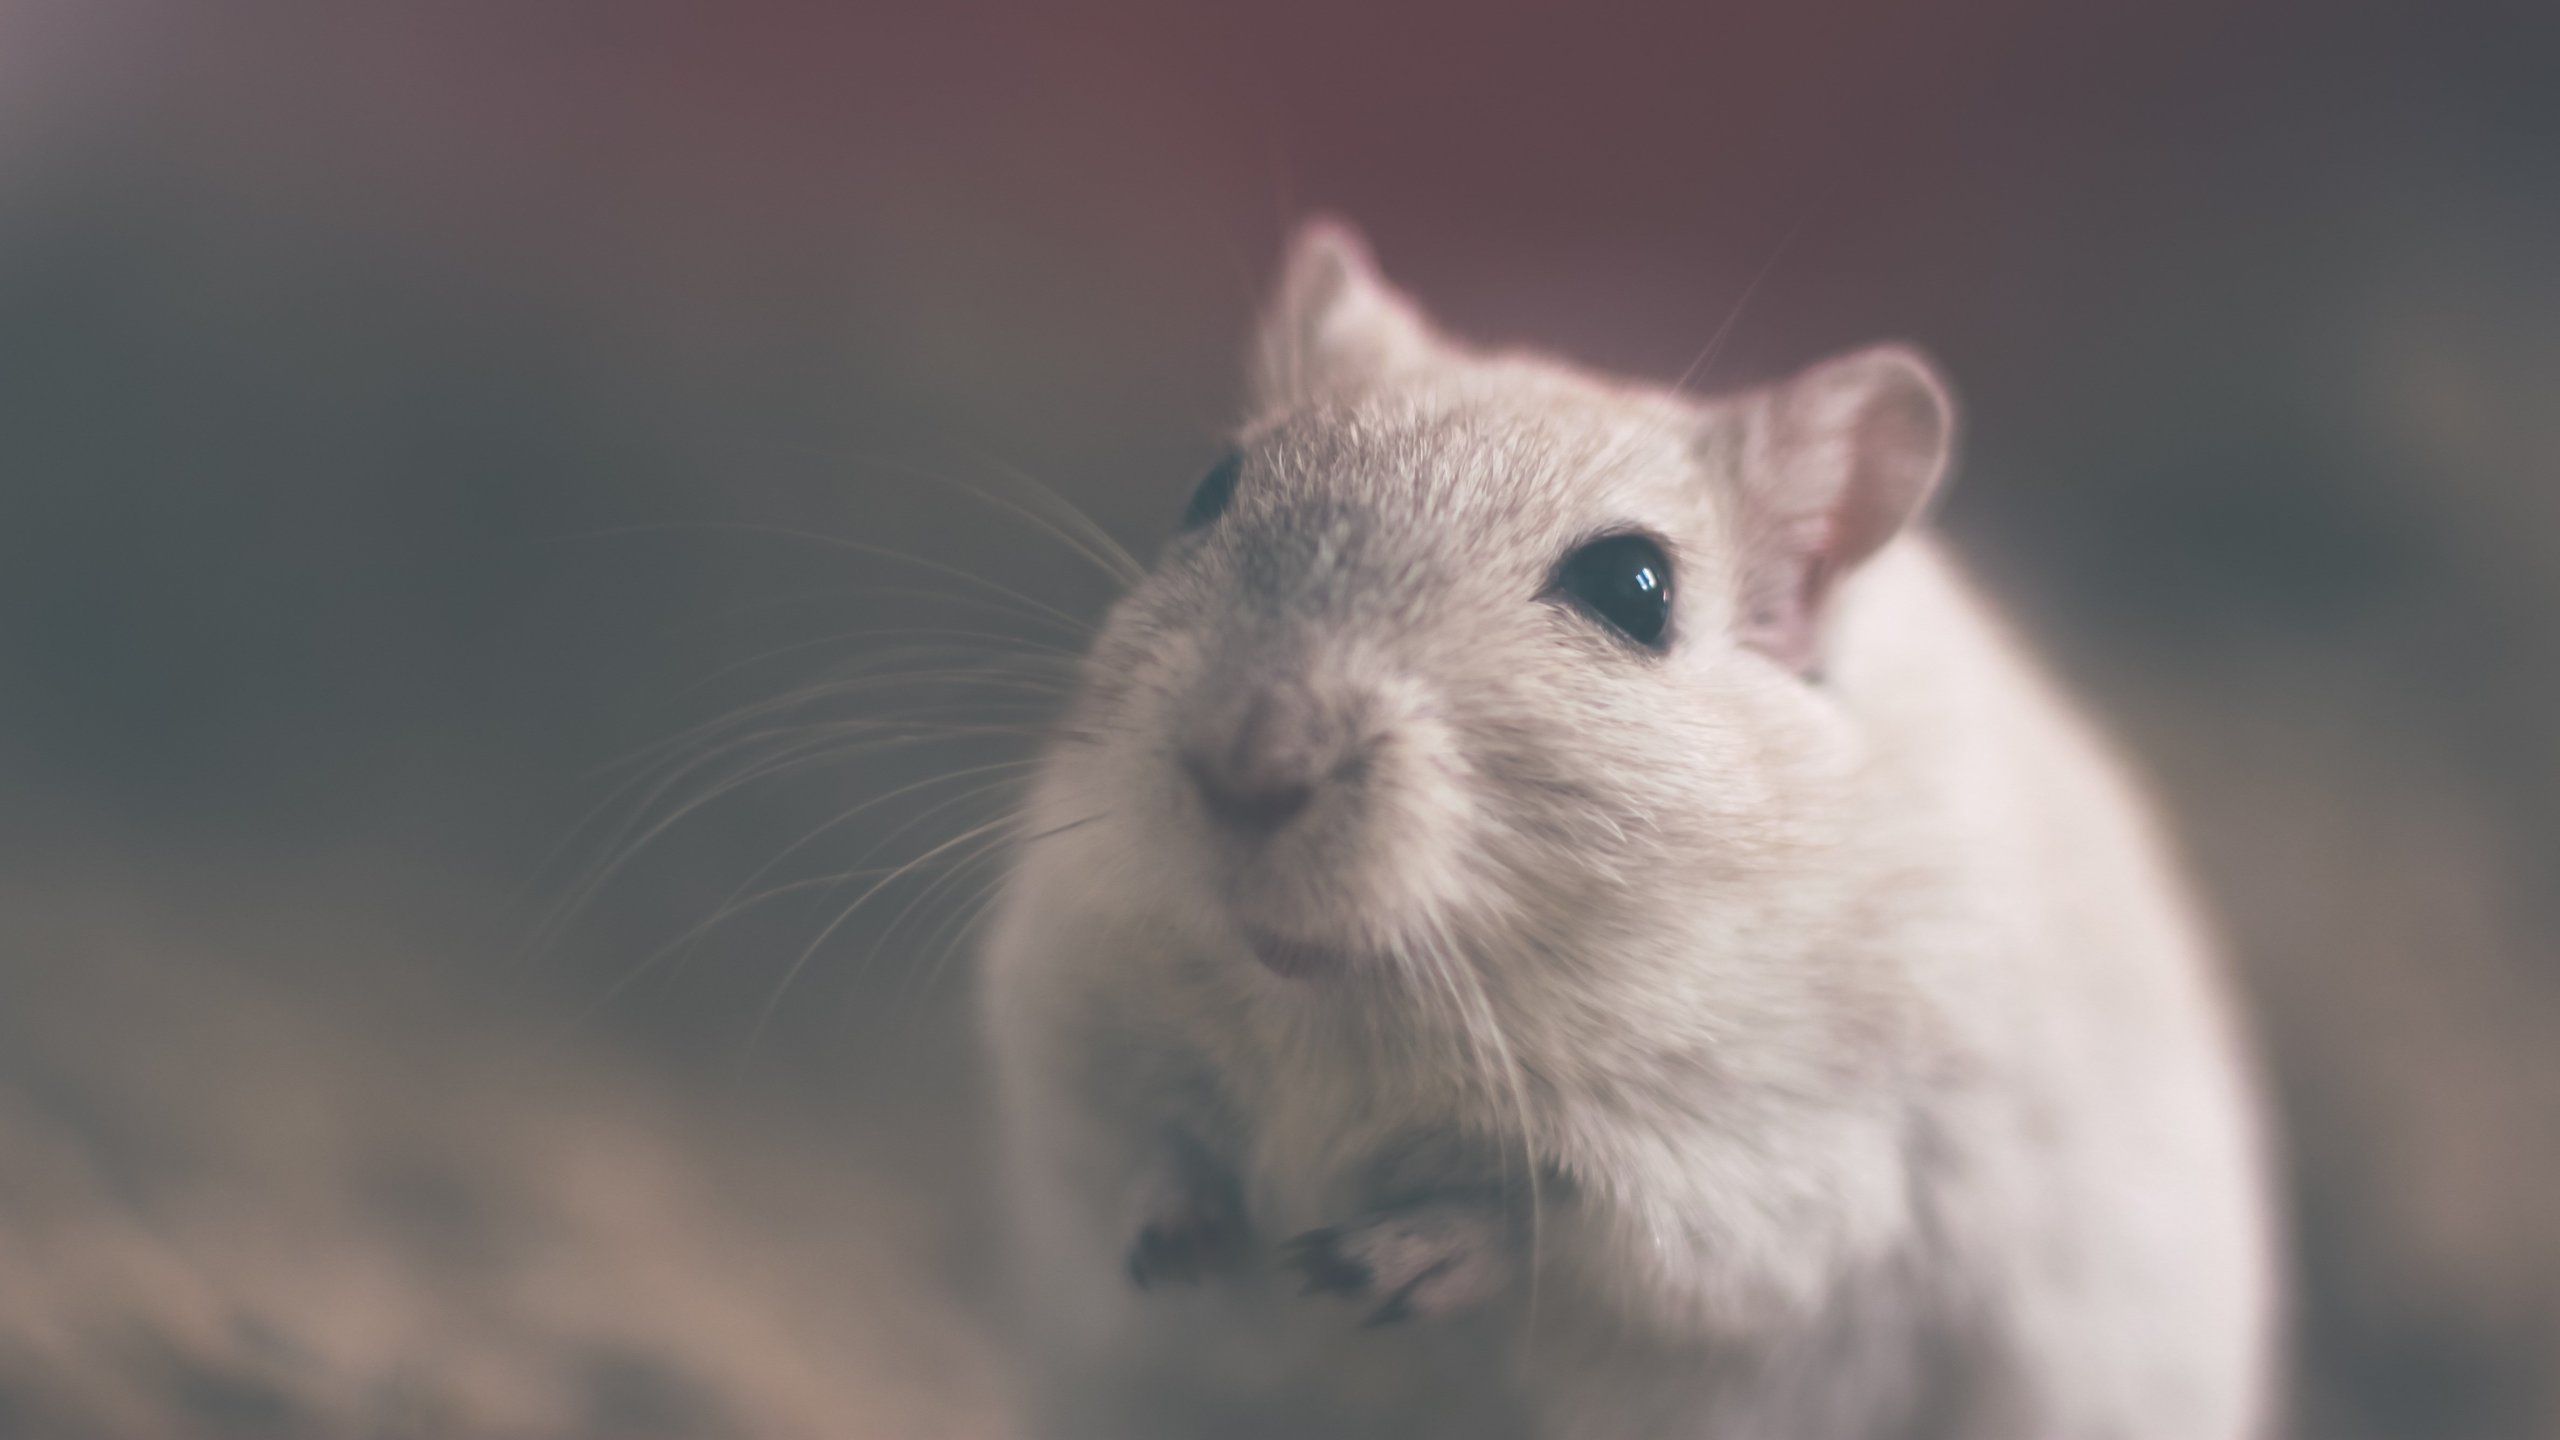 rats free from experiments